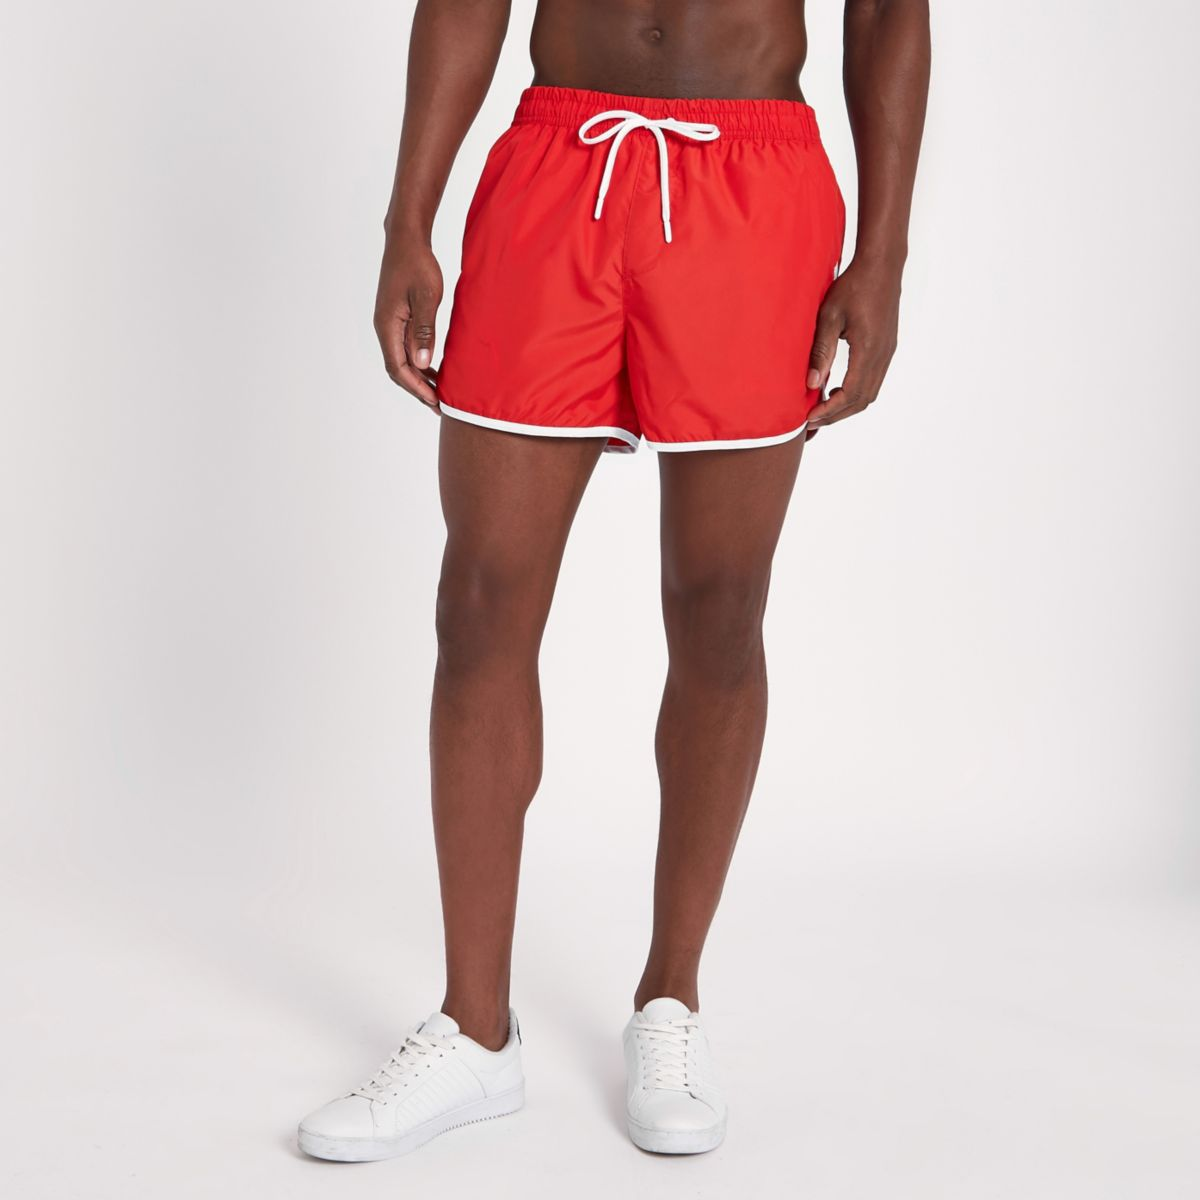 Red stripe side short swim trunks